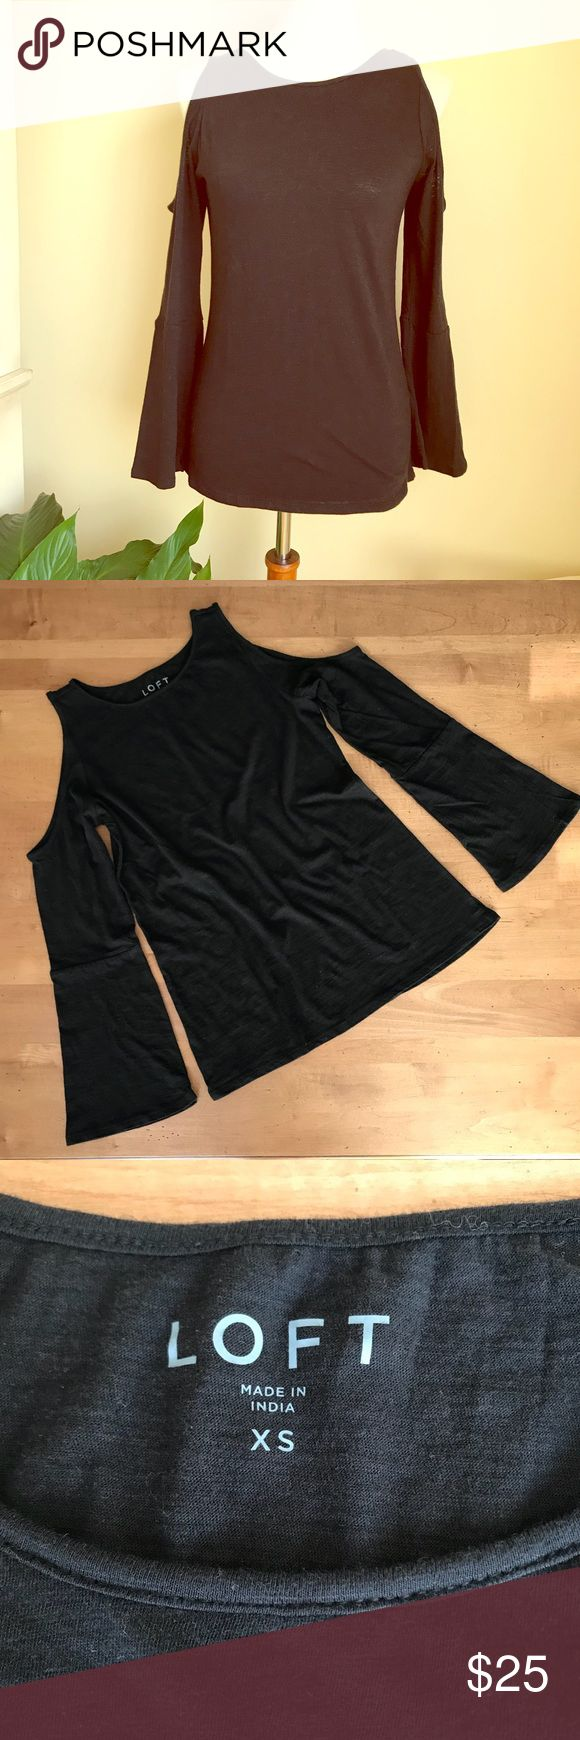 🎉HP🎉Anne Taylor LOFT cold shoulder top Anne Taylor LOFT Cold Shoulder T-Shirt with bell sleeves. Looks great with jeans! NWT. LOFT Tops Tees - Long Sleeve